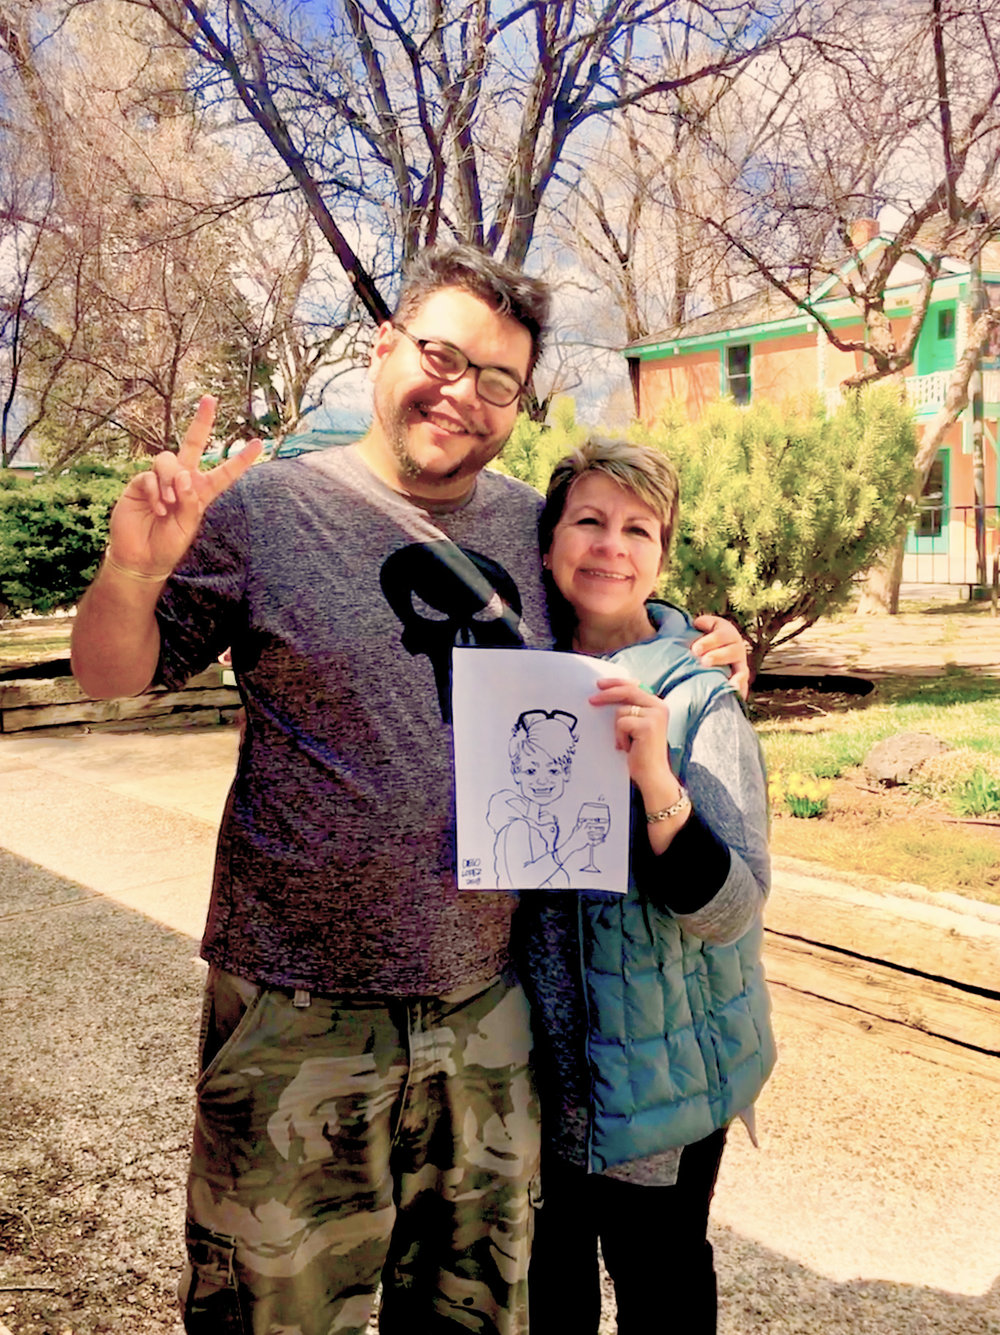 A huge arts supporter, Agnes enjoyed visiting with a local artist while in Taos, New Mexico, this past March.